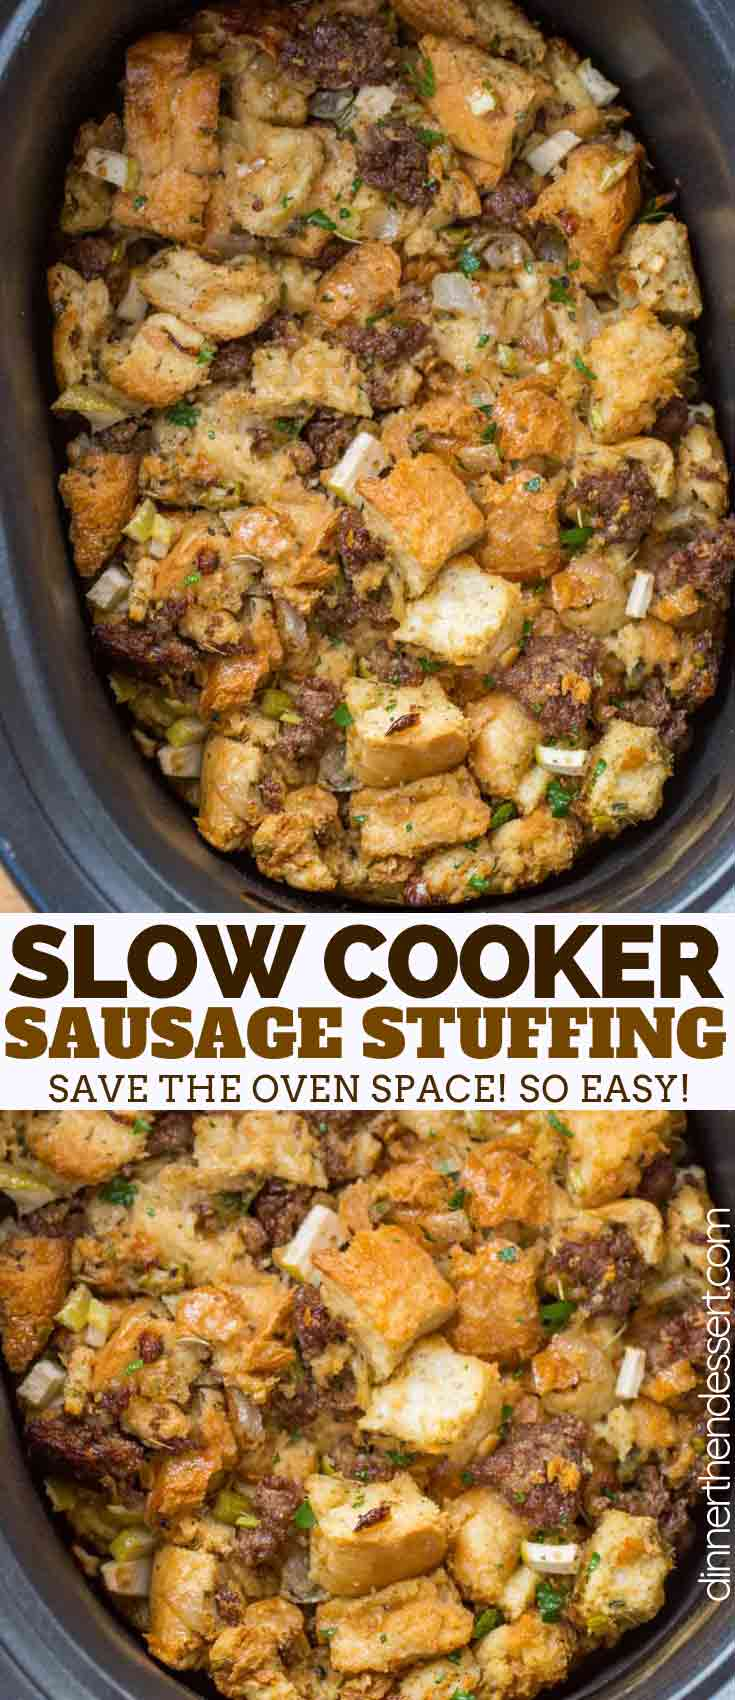 Slow Cooker Stuffing made with celery, onions, bread, and seasonings is a savory side dish and an EASY way to free up valuable oven space this Thanksgiving!